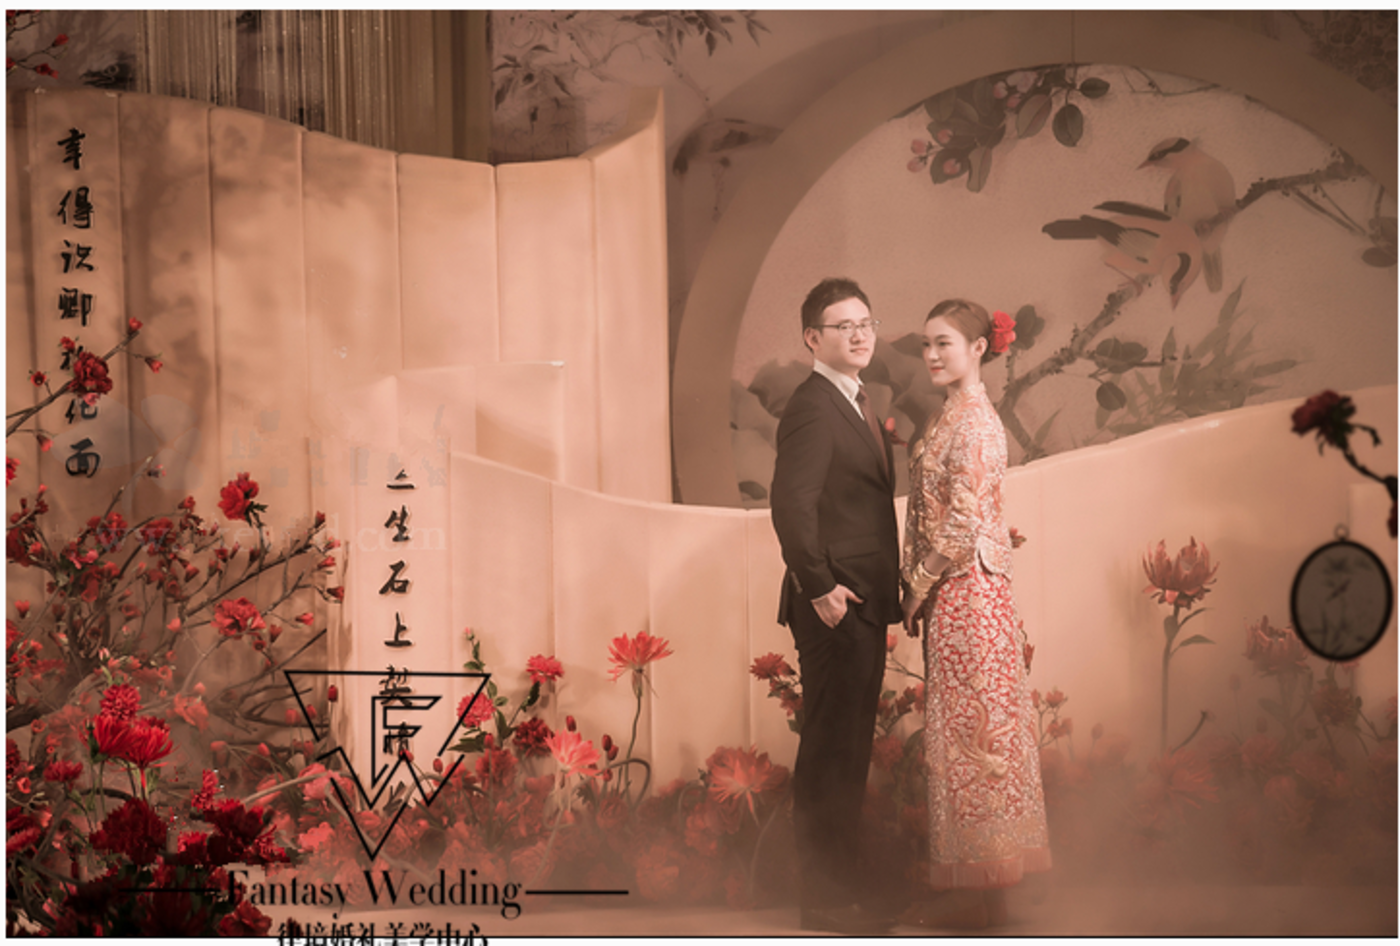 「Fantasy Wedding」 景秀未央14